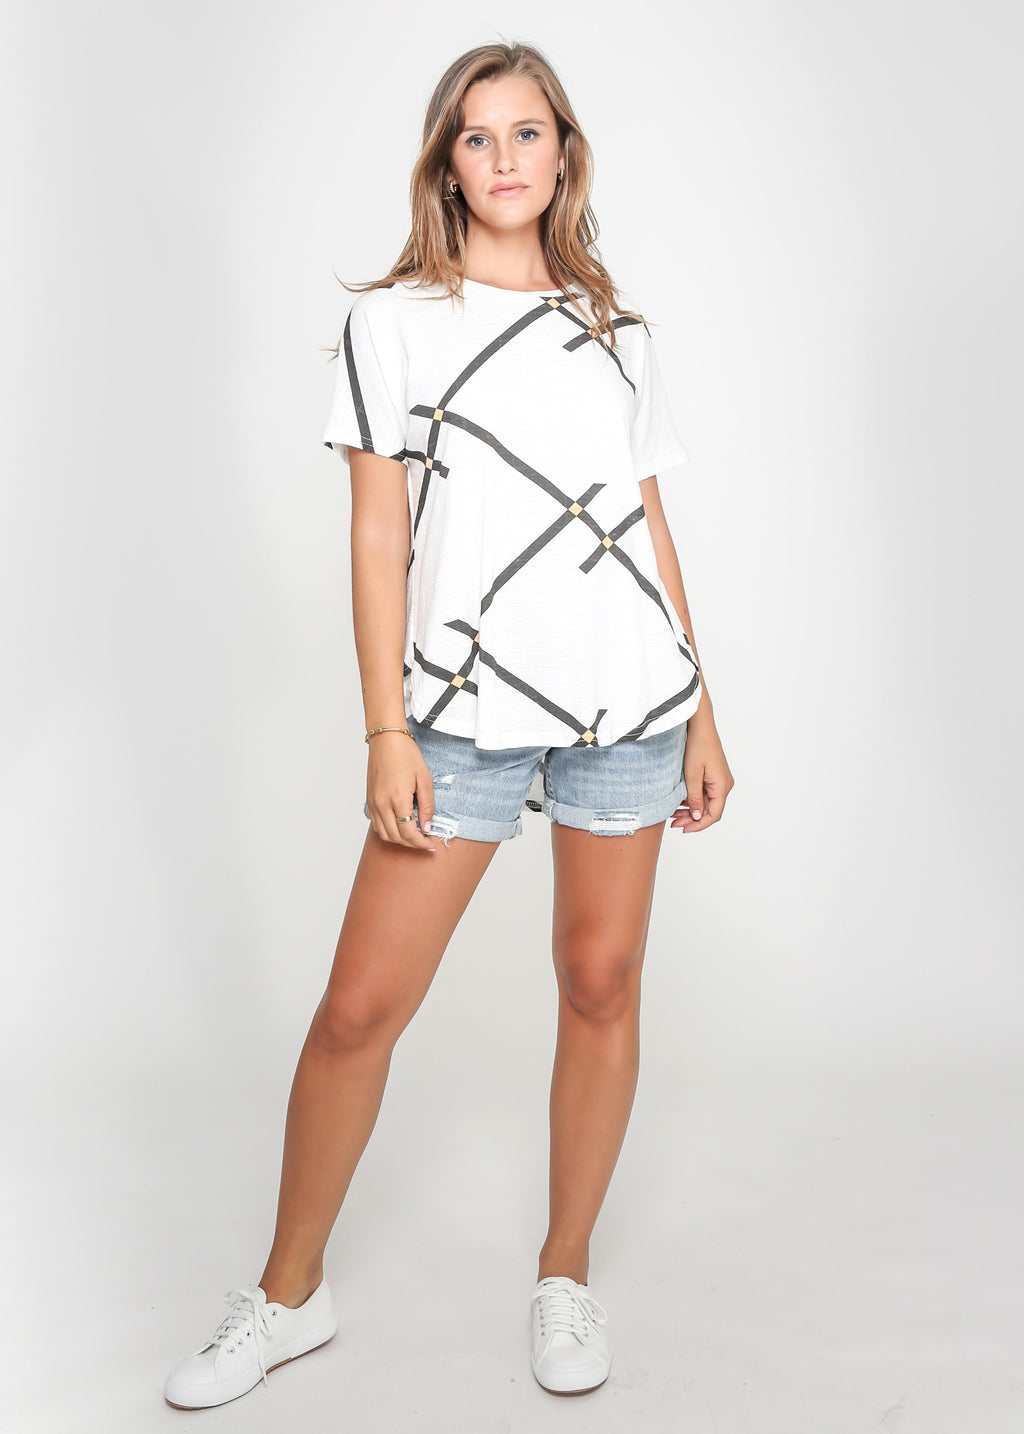 AUDREY TEE - WHITE/BLACK